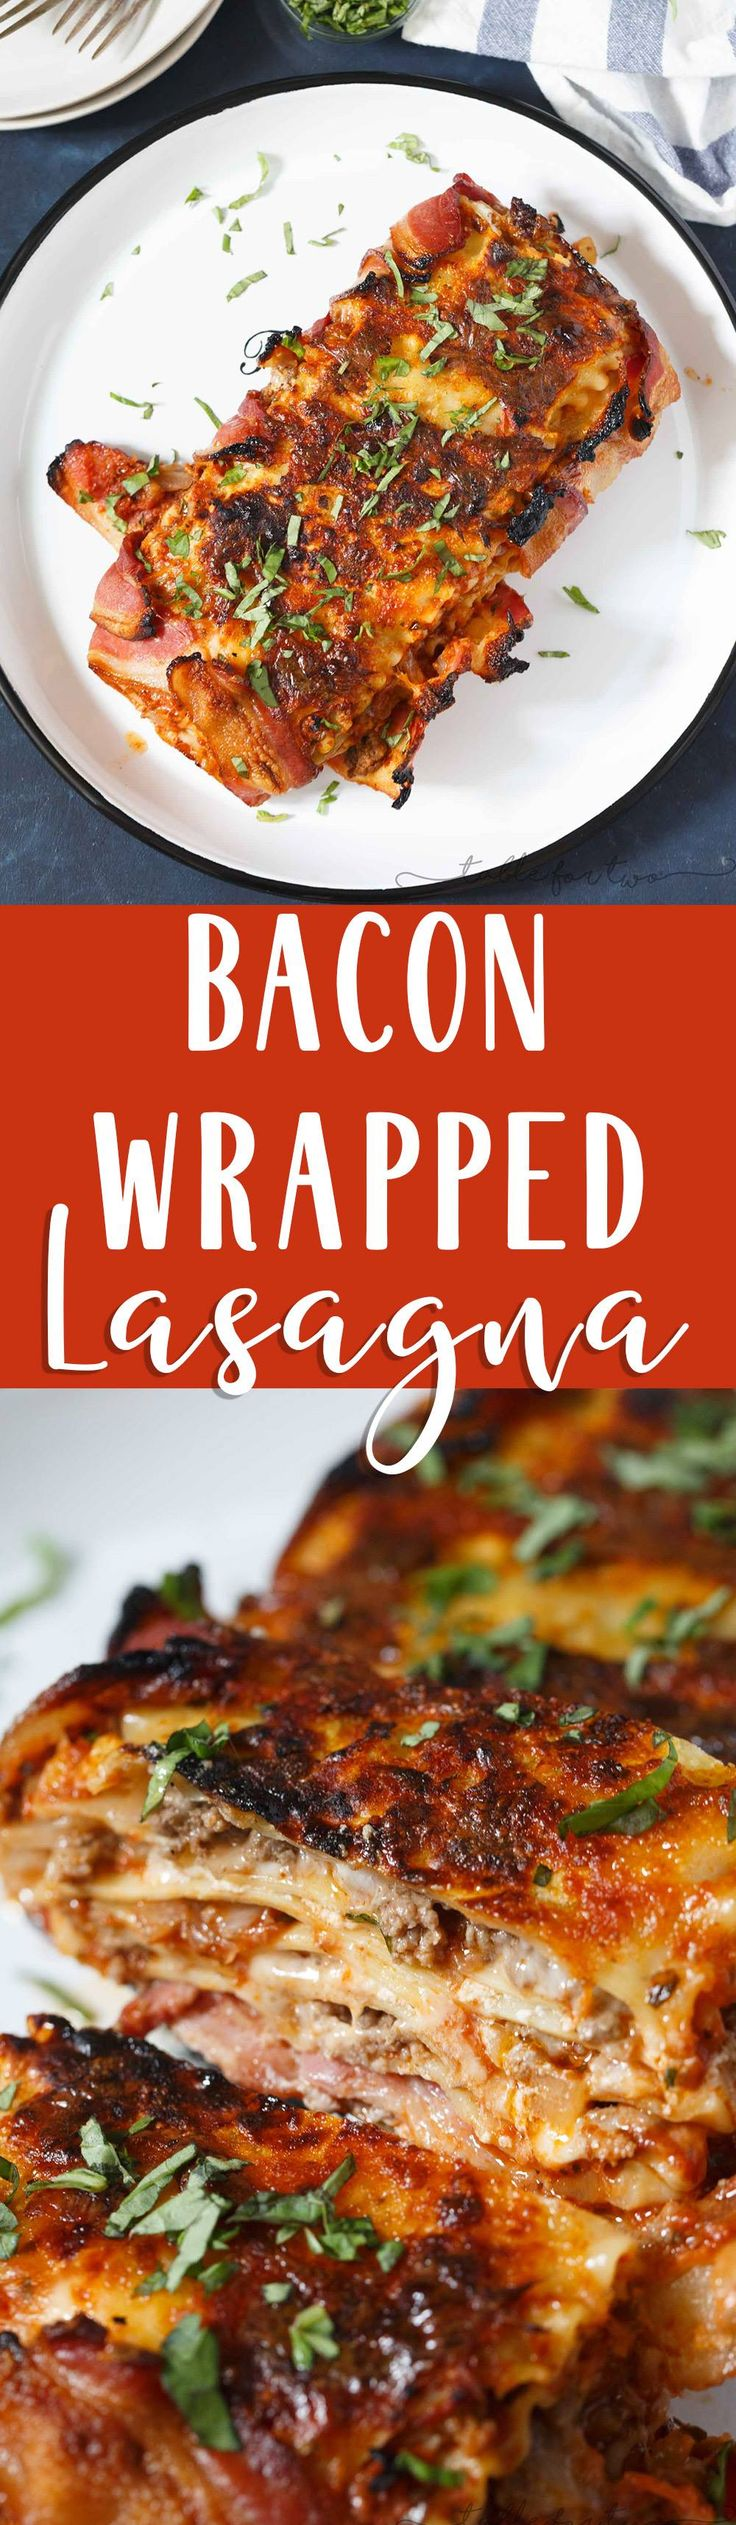 Who could say no to bacon wrapped lasagna? Once you have a bite of this, you will won't want to make lasagna any other way! This is such an awesome, decadent spin on the classic and traditional lasagna!